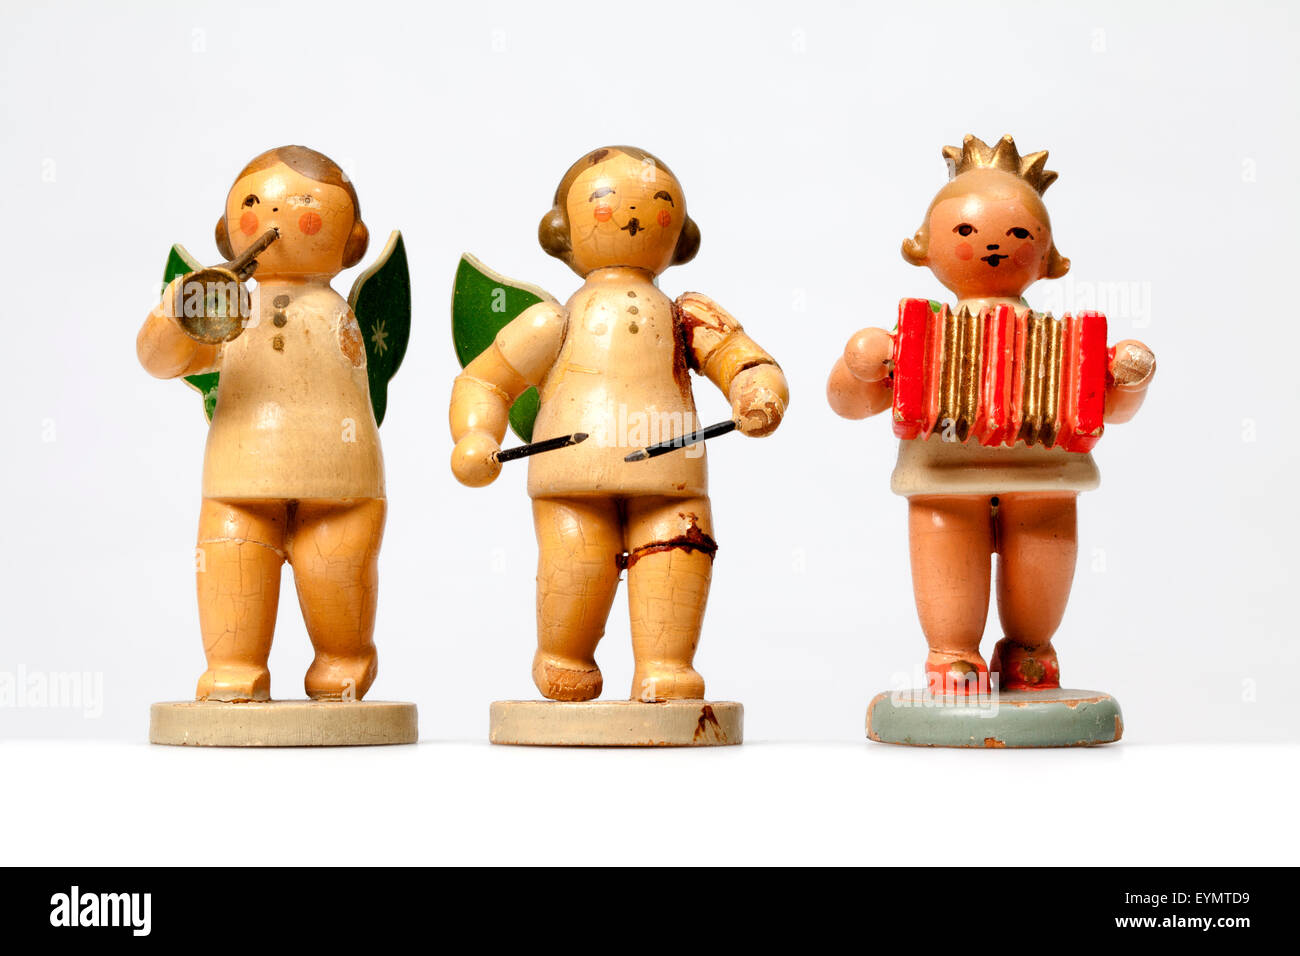 Broken wooden angels playing musical instruments, from the Erzgebirge, Germany, Europe, - Stock Image